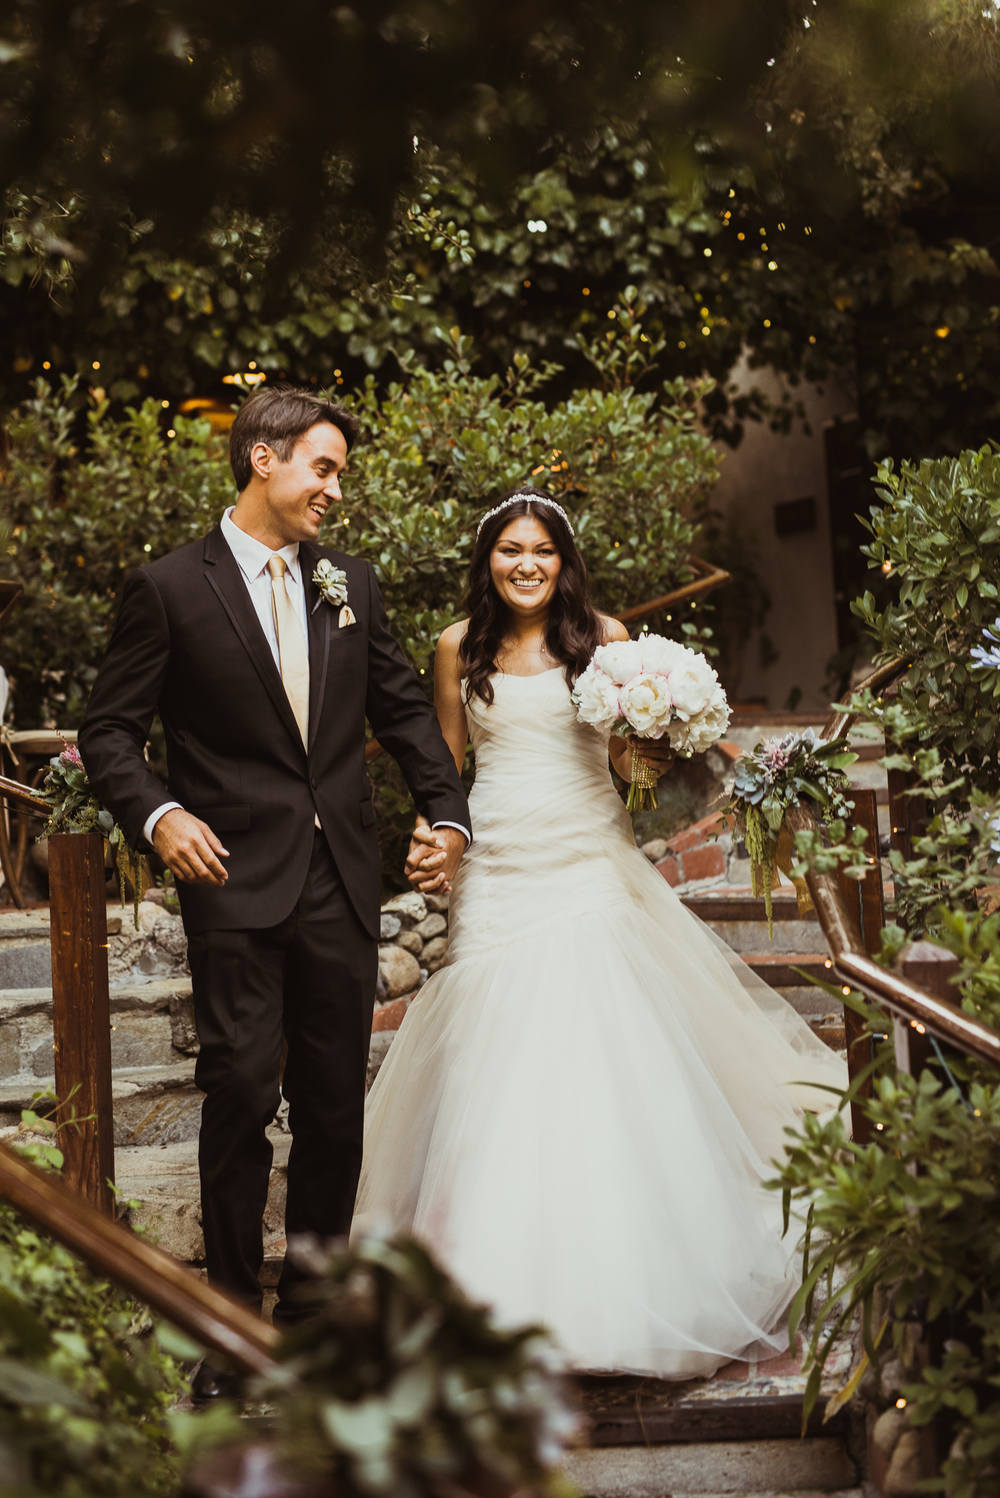 ©Isaiah & Taylor Photography - Inn of the Seventh Ray Wedding, Topanga Canyon California-96.jpg